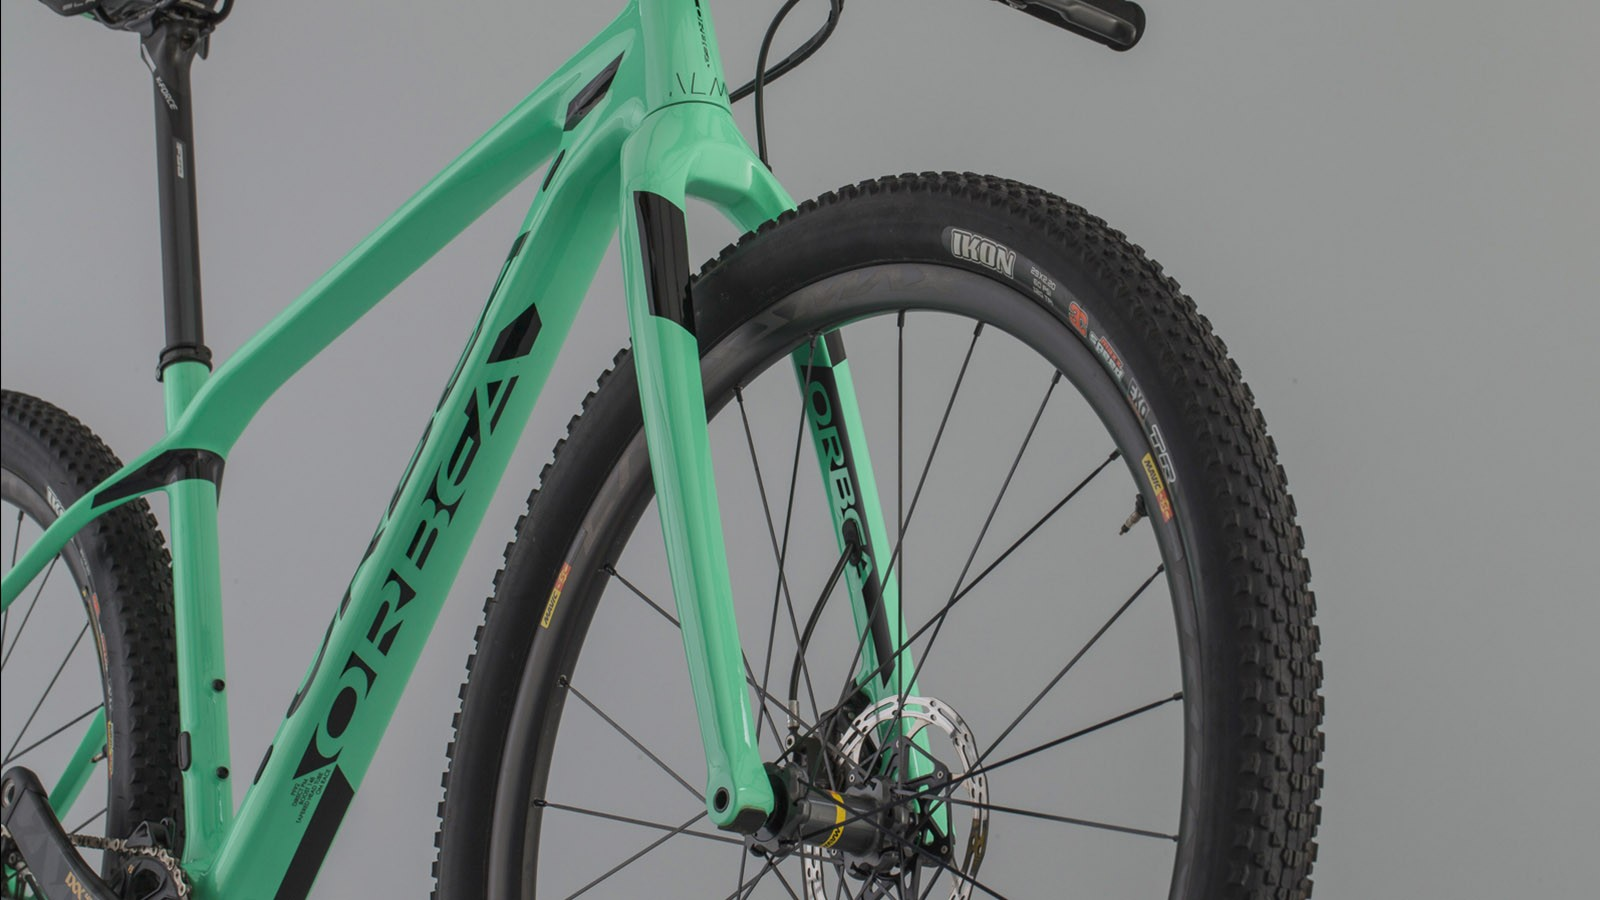 The Spirit carbon fork is claimed to weigh 575g